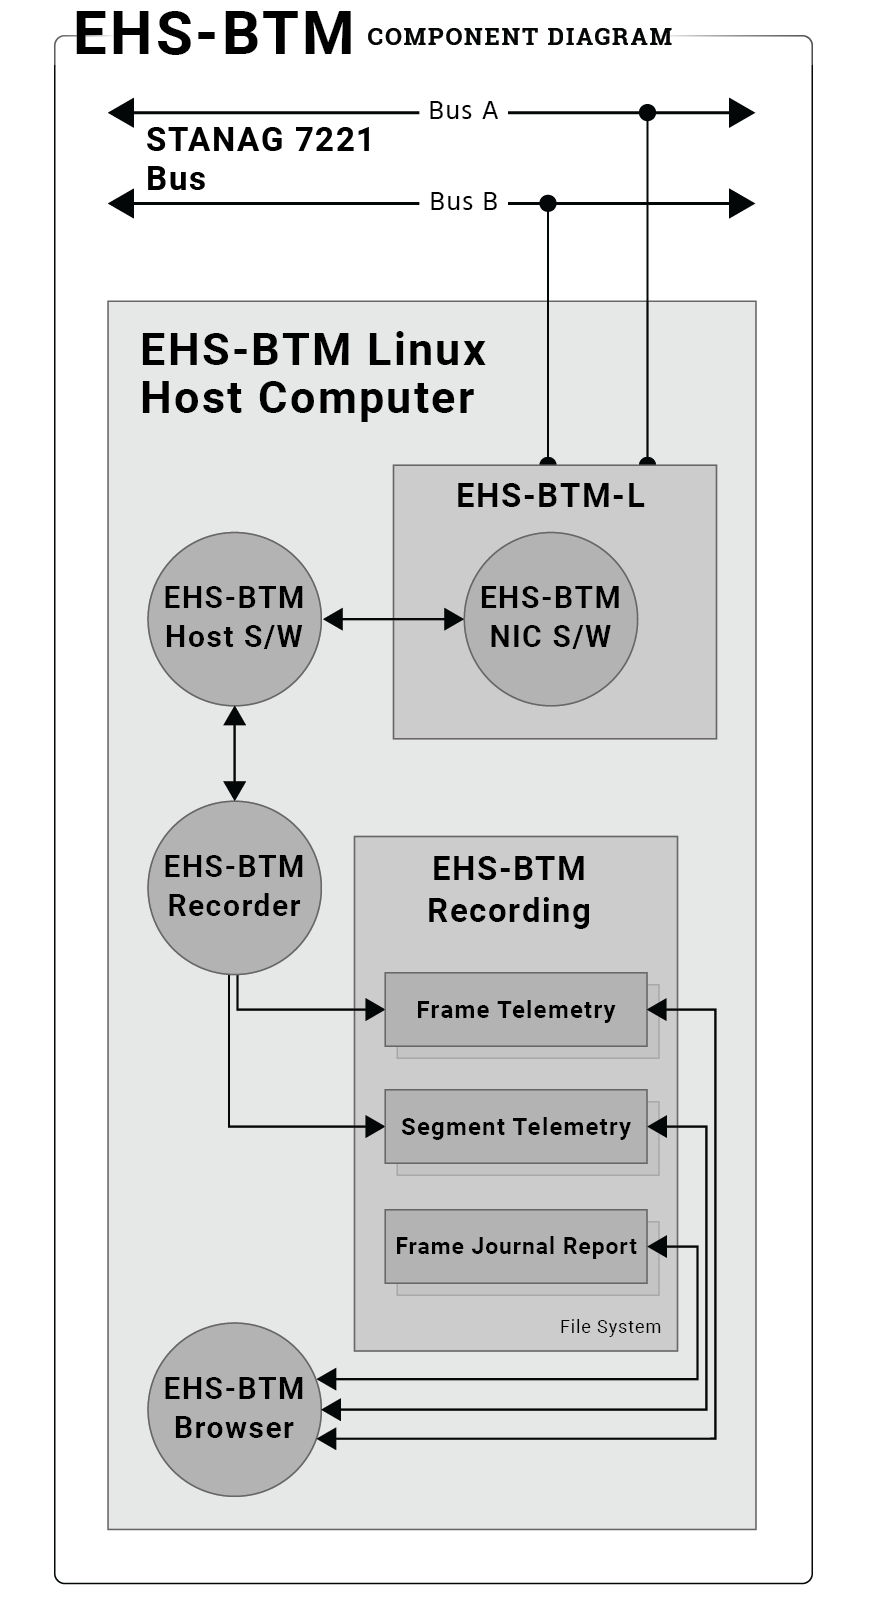 Edgewater Tools Basic Computer Components Diagram Related Ehs Btm Component